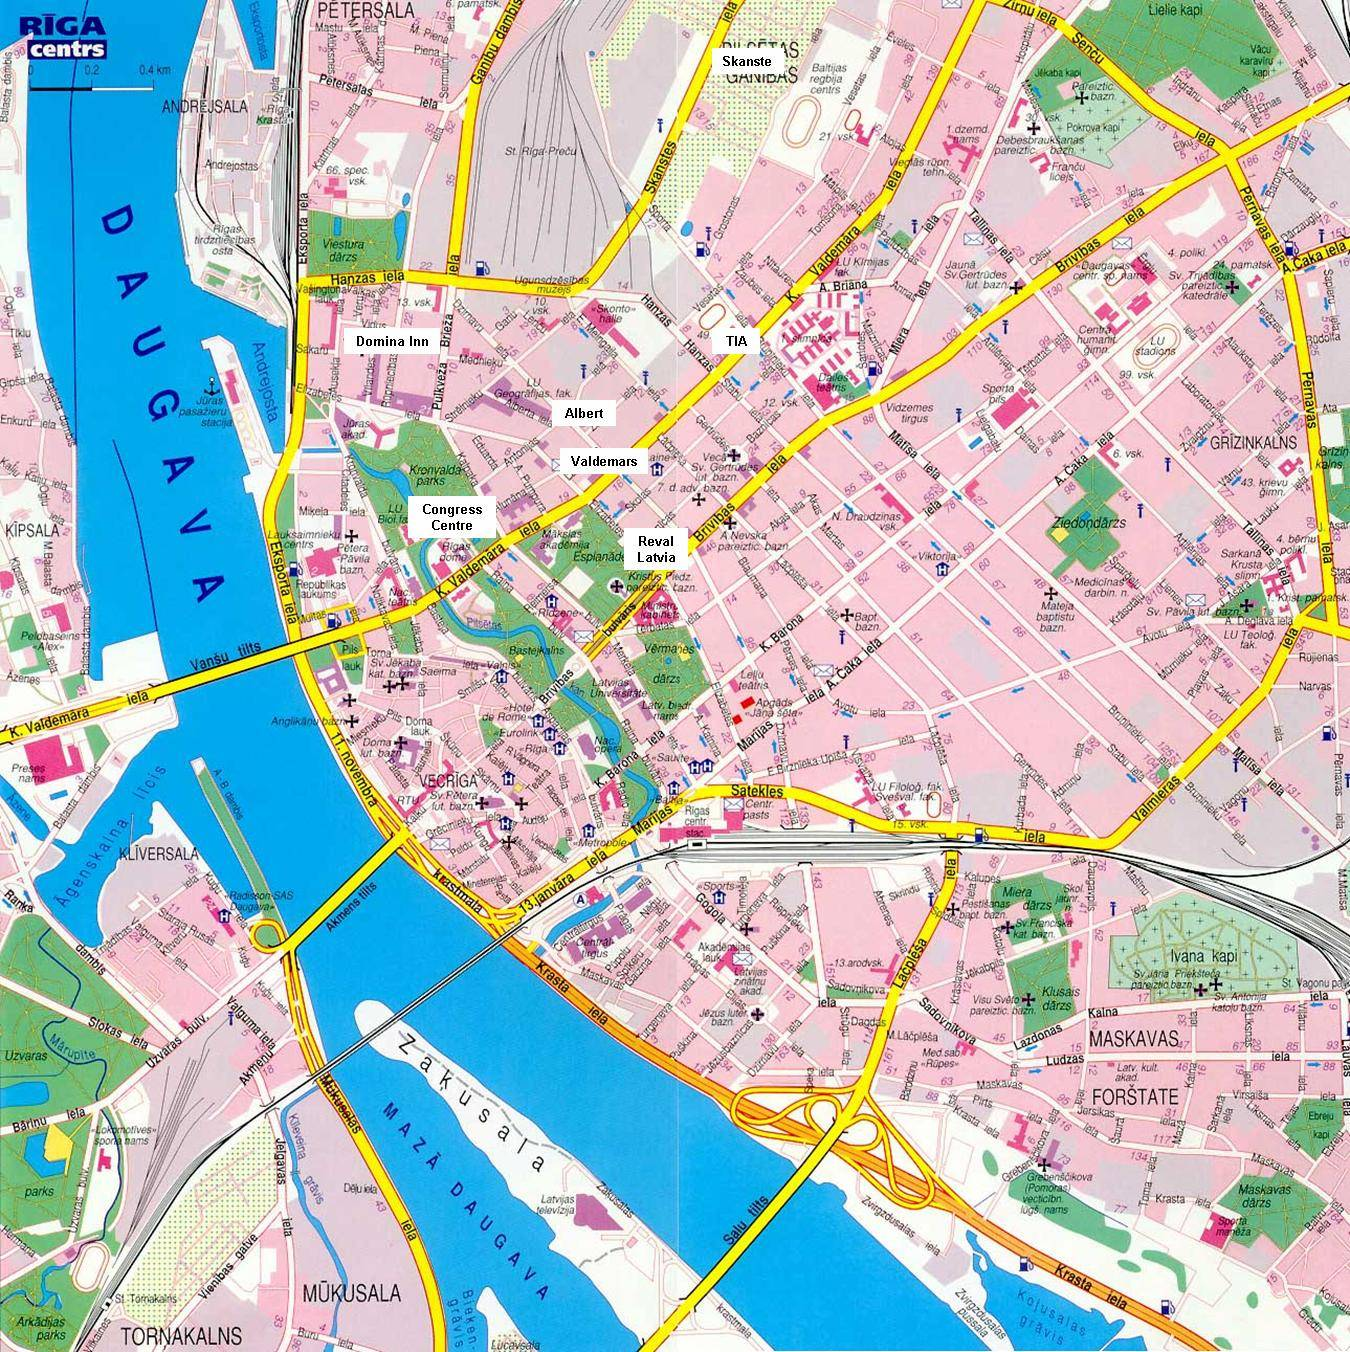 riga karta Large Riga Maps for Free Download and Print | High Resolution and  riga karta